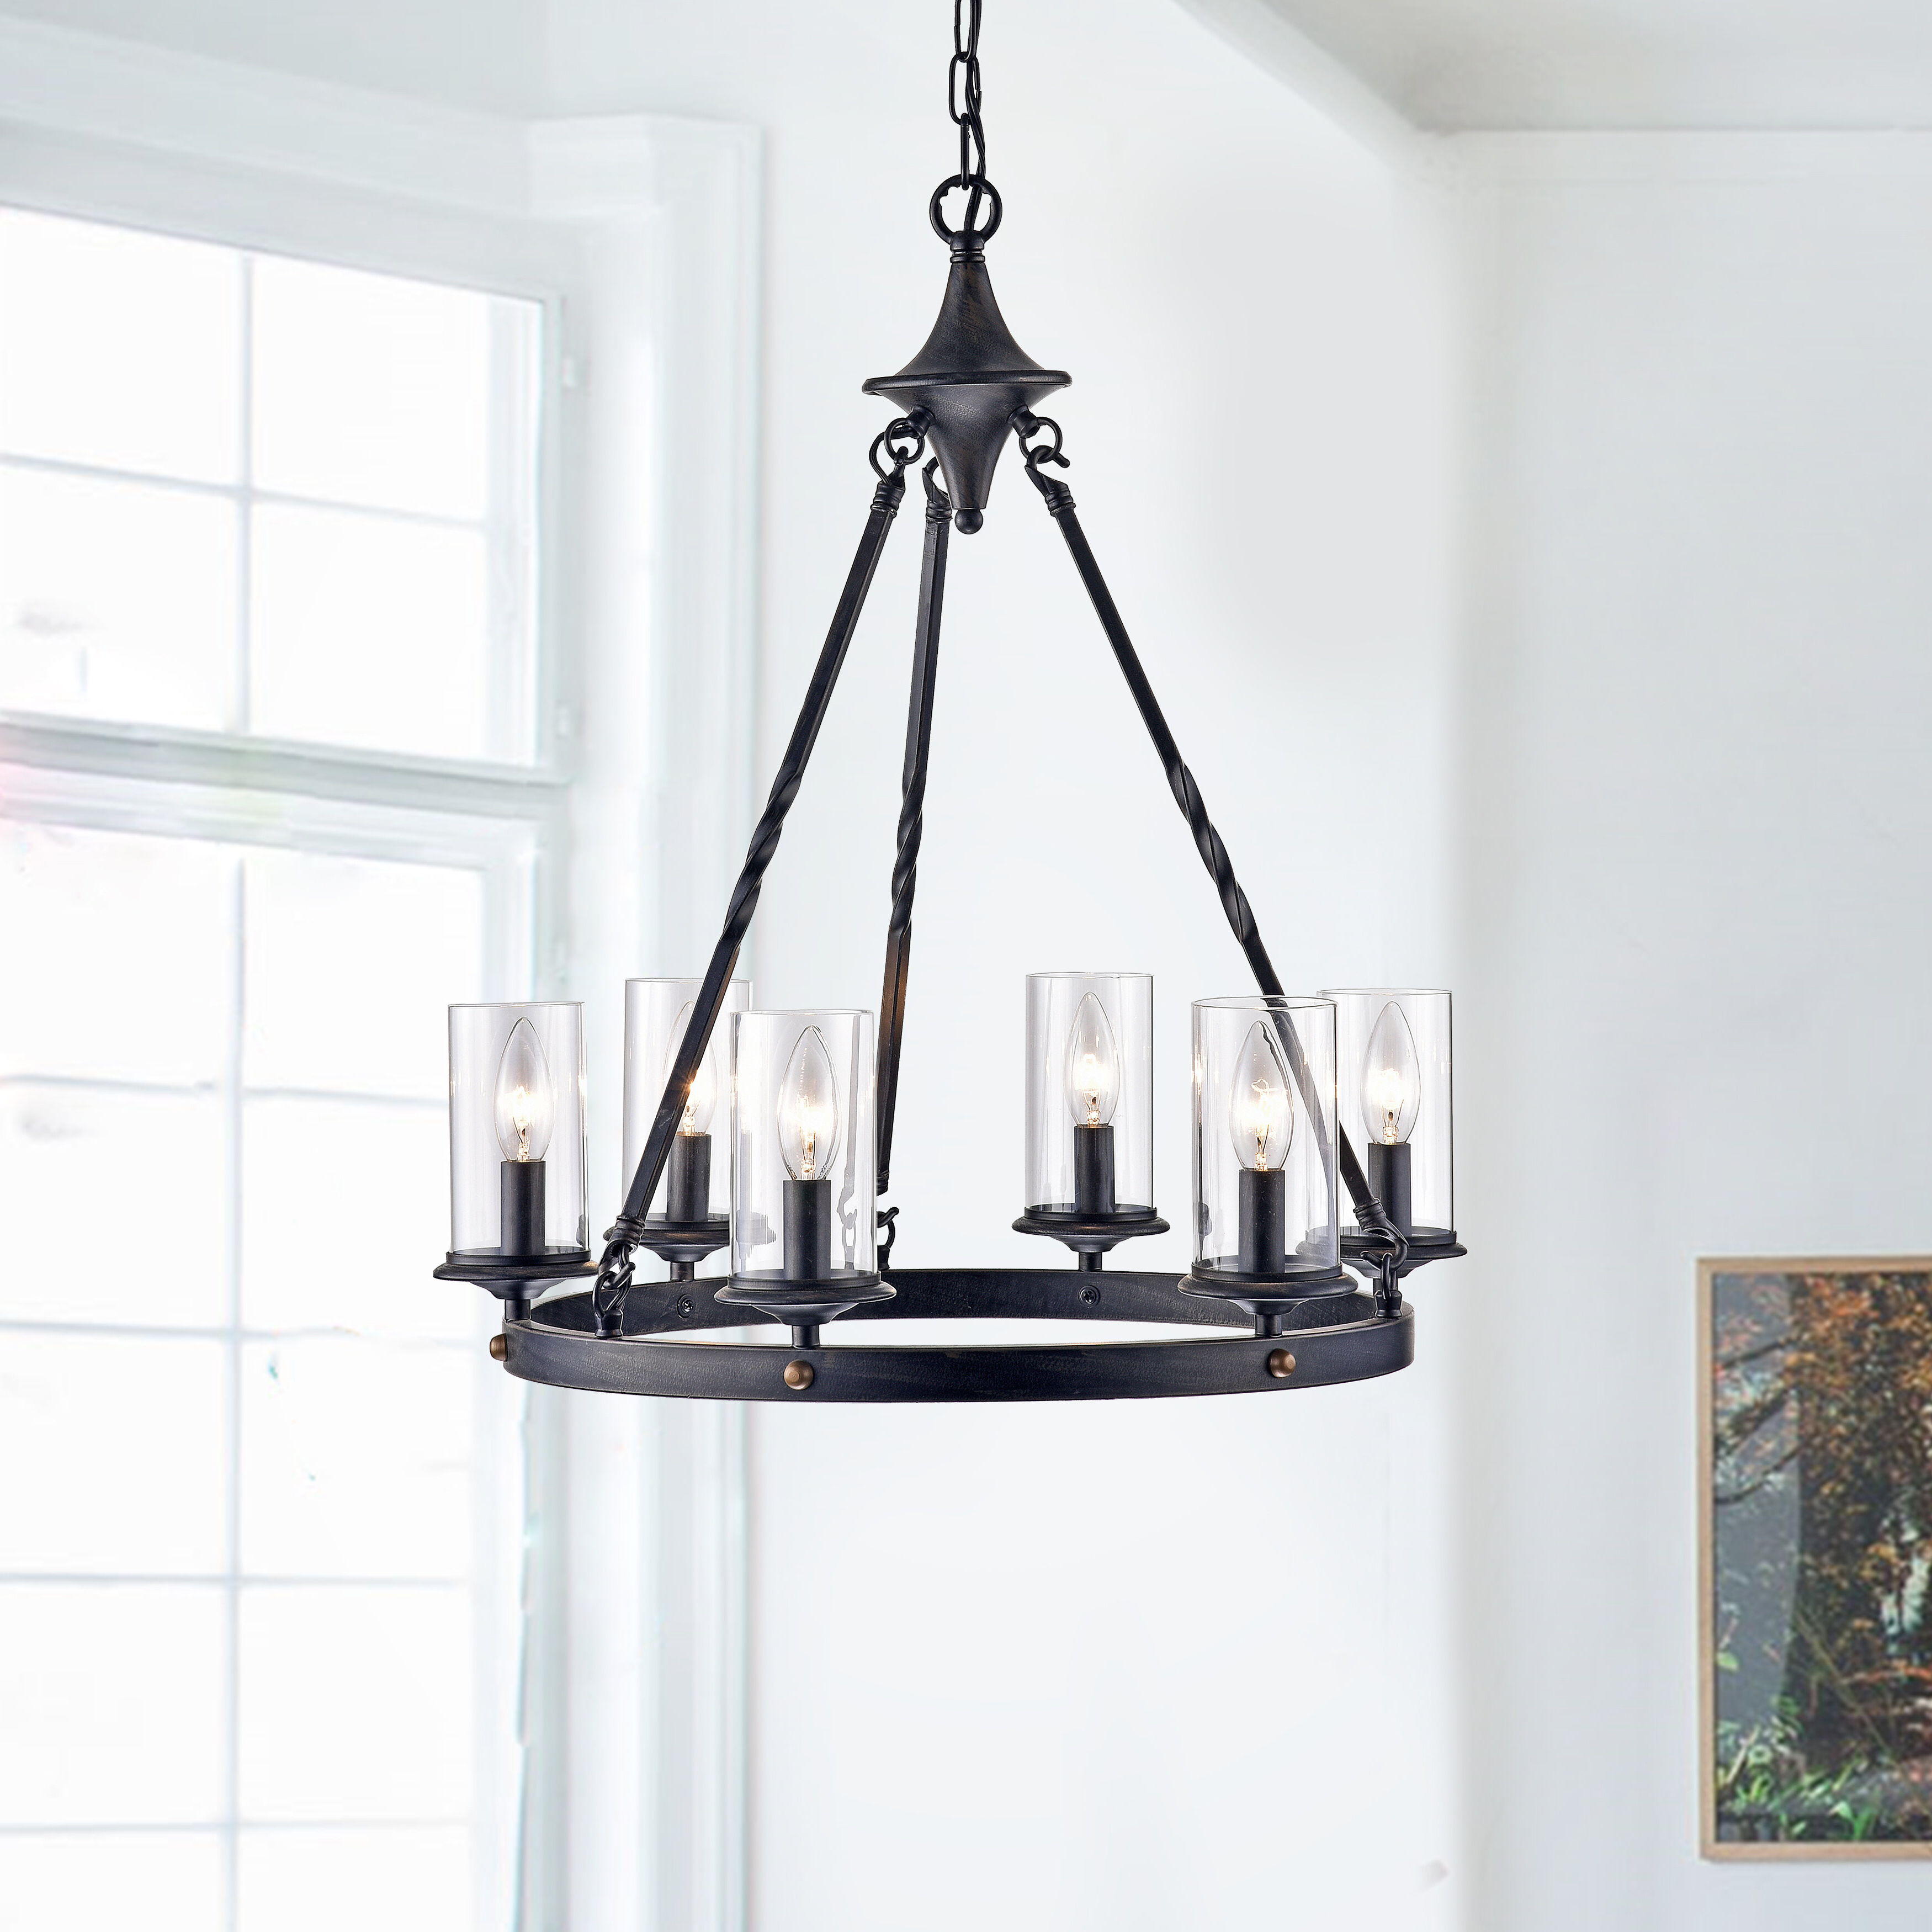 Suki 5 Light Shaded Chandeliers For Famous Farmhouse & Rustic Andover Mills Chandeliers (View 11 of 20)